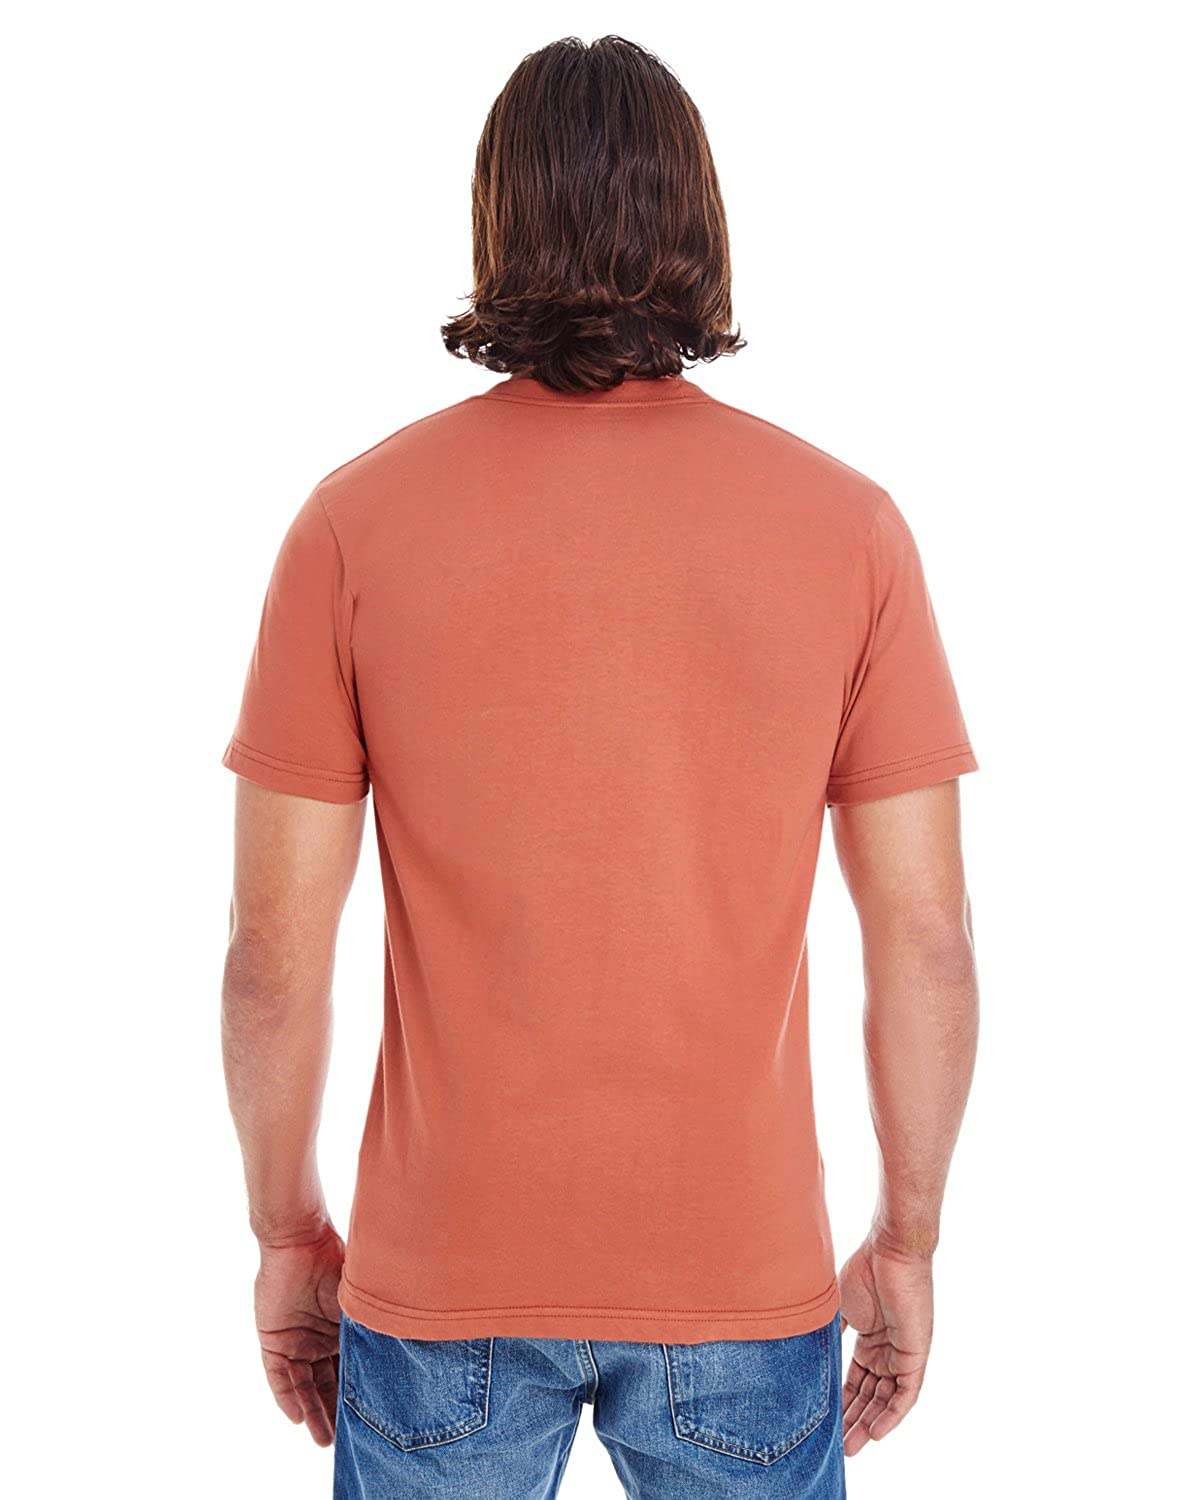 Cedar M Clementine Mens Short Sleeve Organic Cotton Tee 2001OR